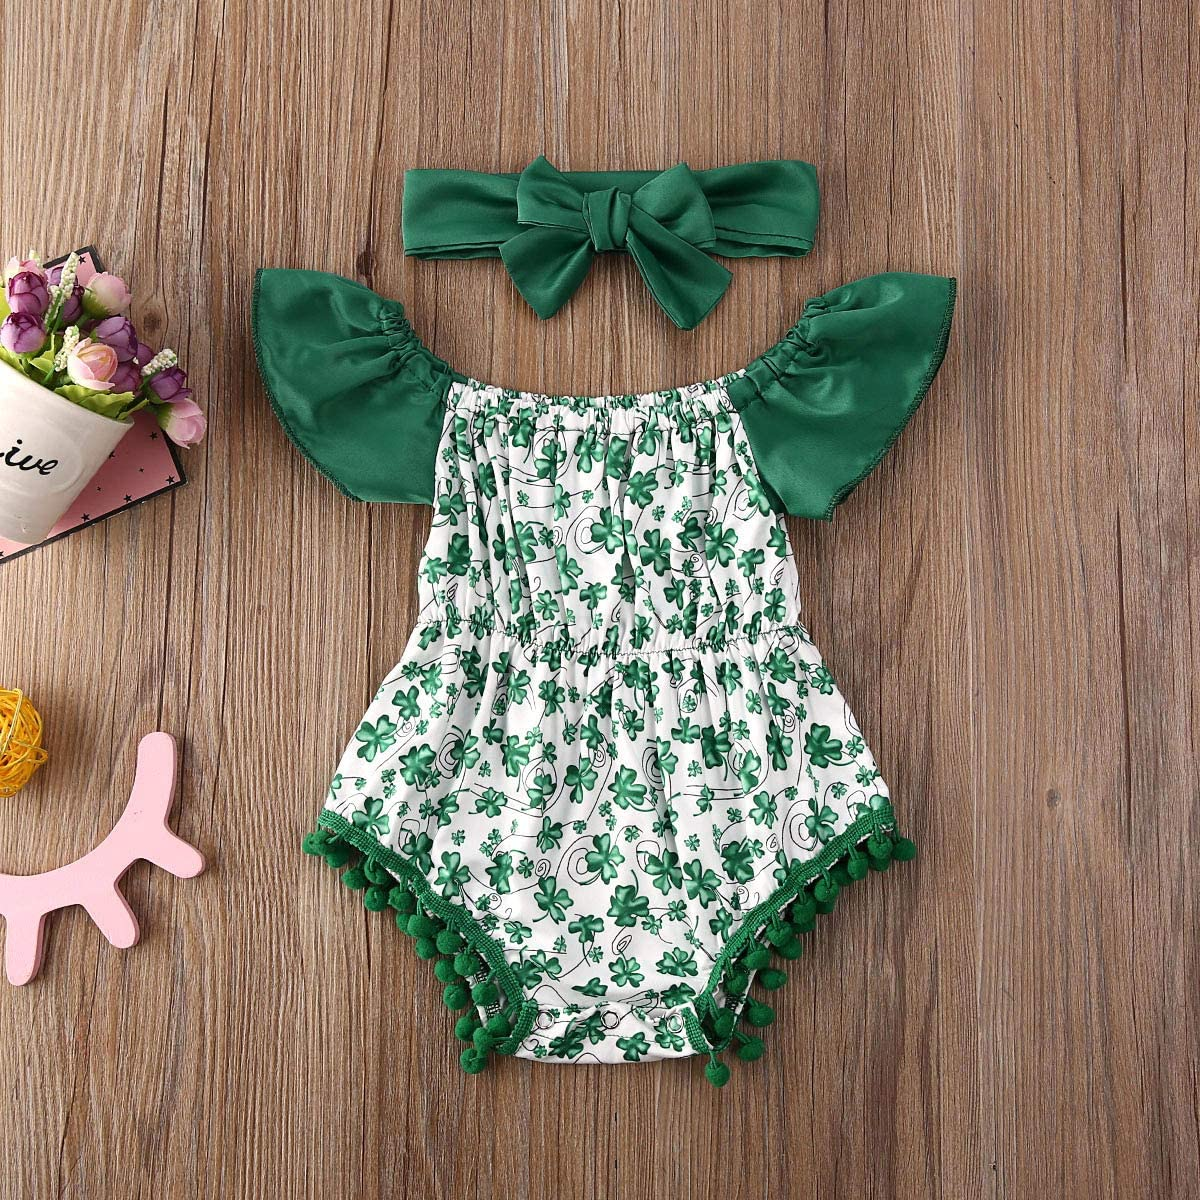 Patricks Day Outfits Infant Kids Four Leaf Clover Printed Romper Ruffle Shorts 2pcs Clothes Set waterluo Baby Girls St